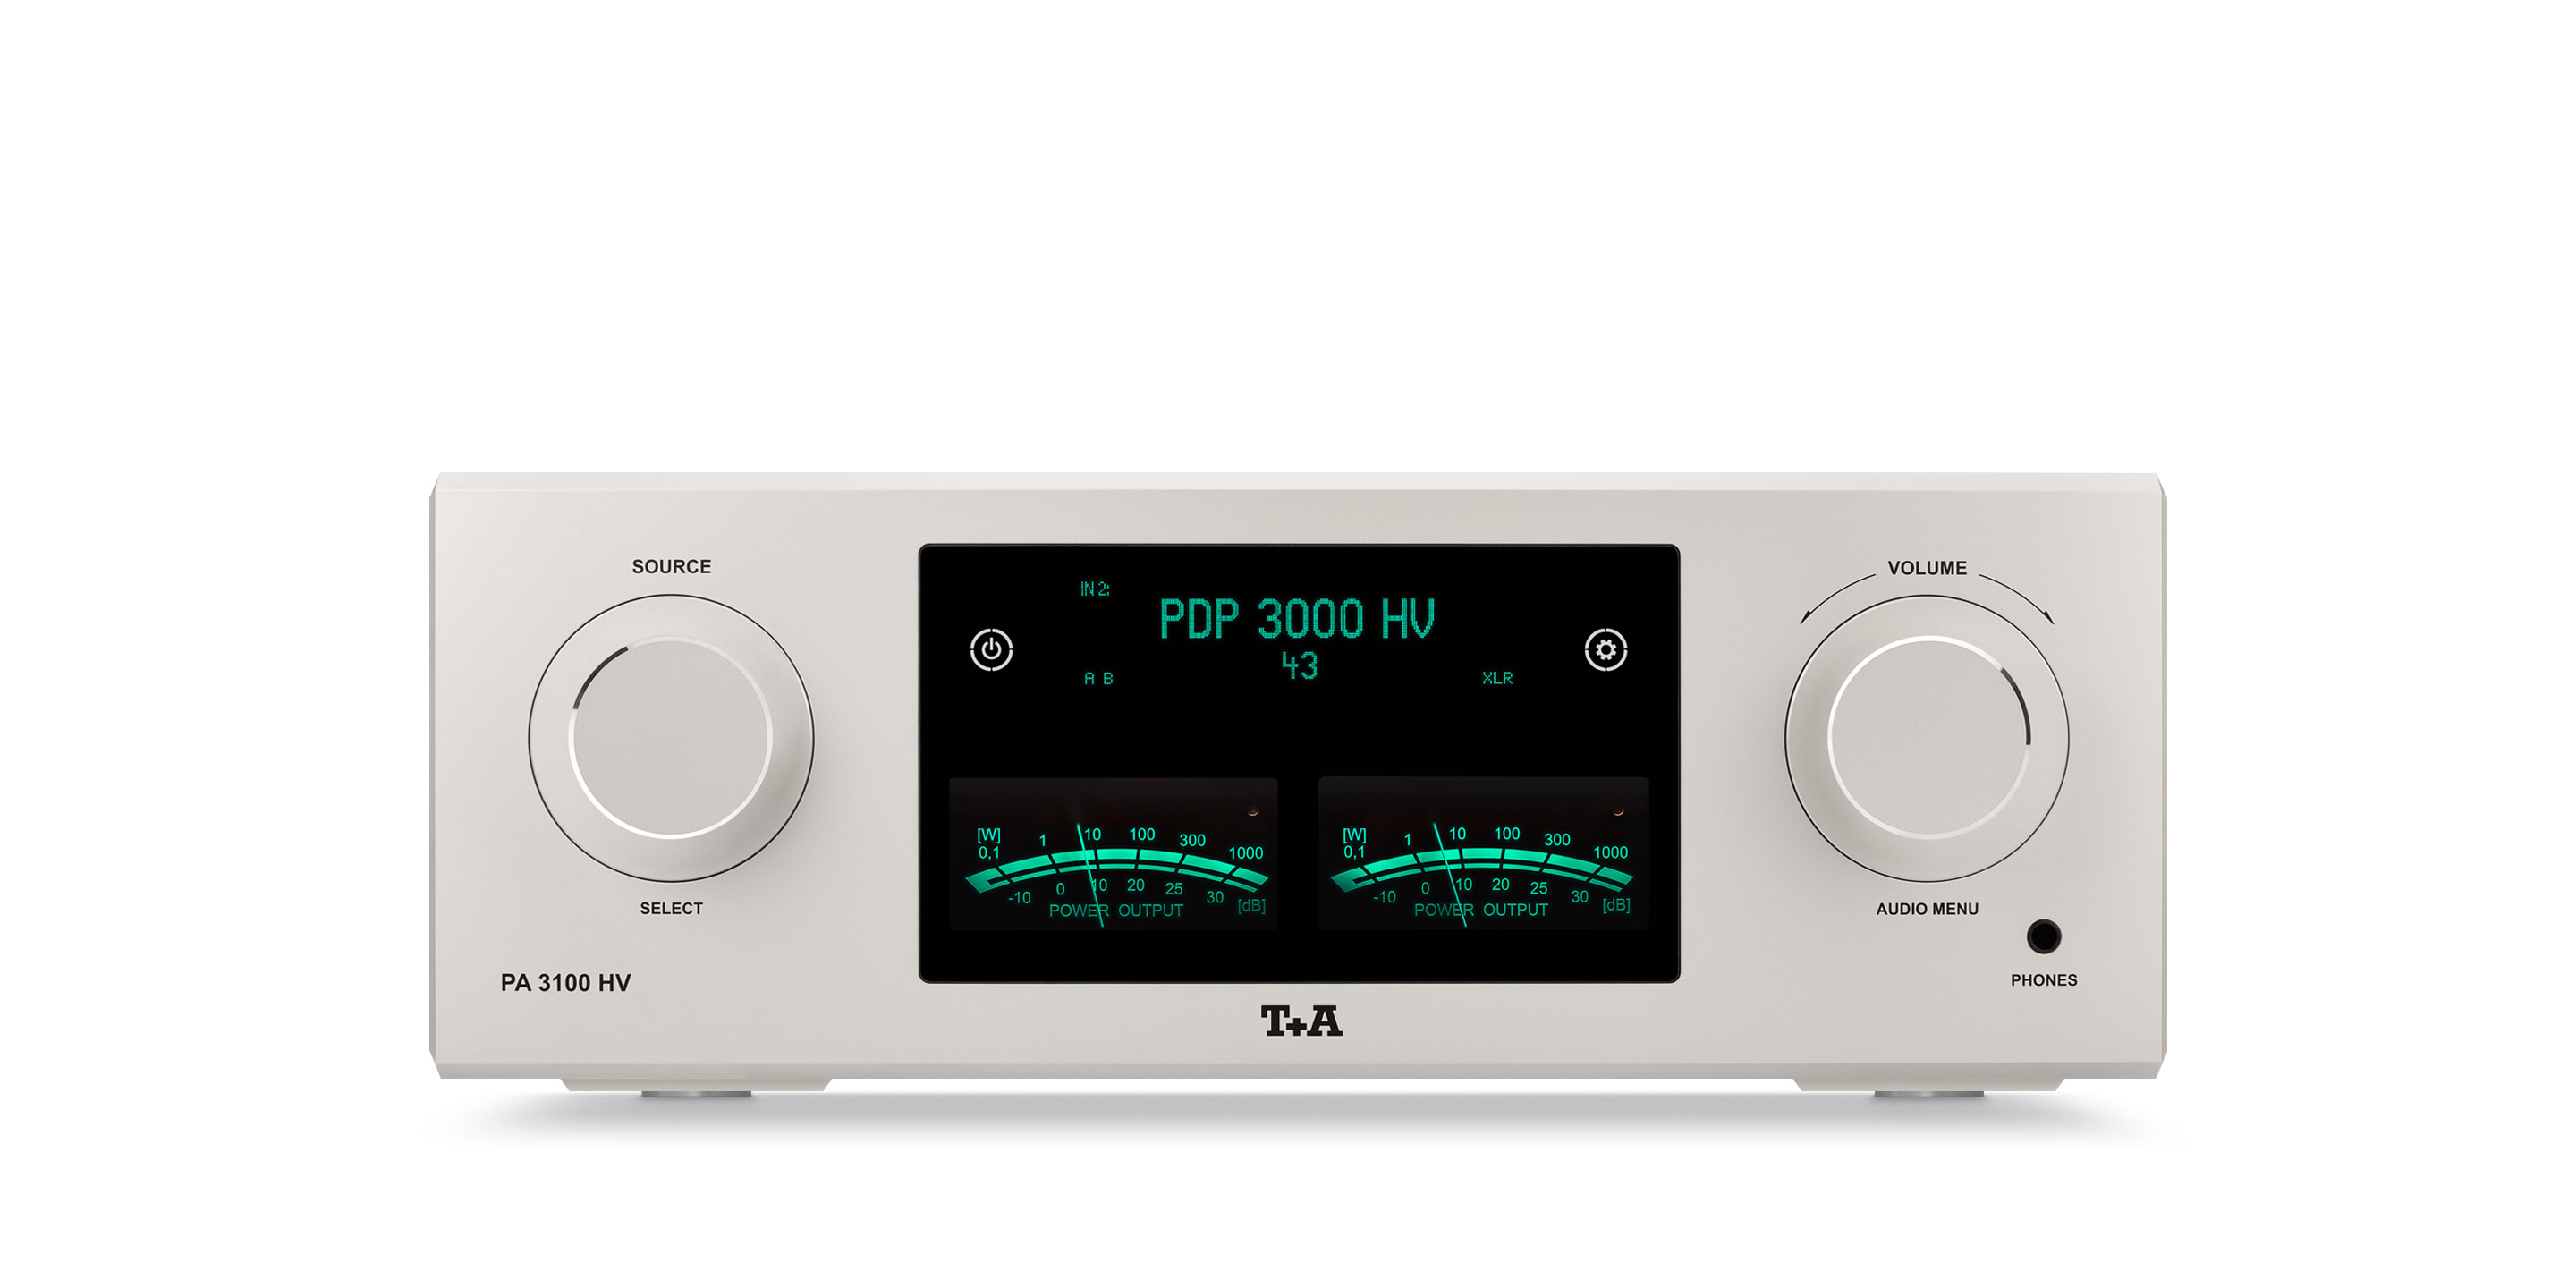 Pa 3100 Hv Integrated Amplifier Stereo Volume Control In Headphone Electrical Engineering